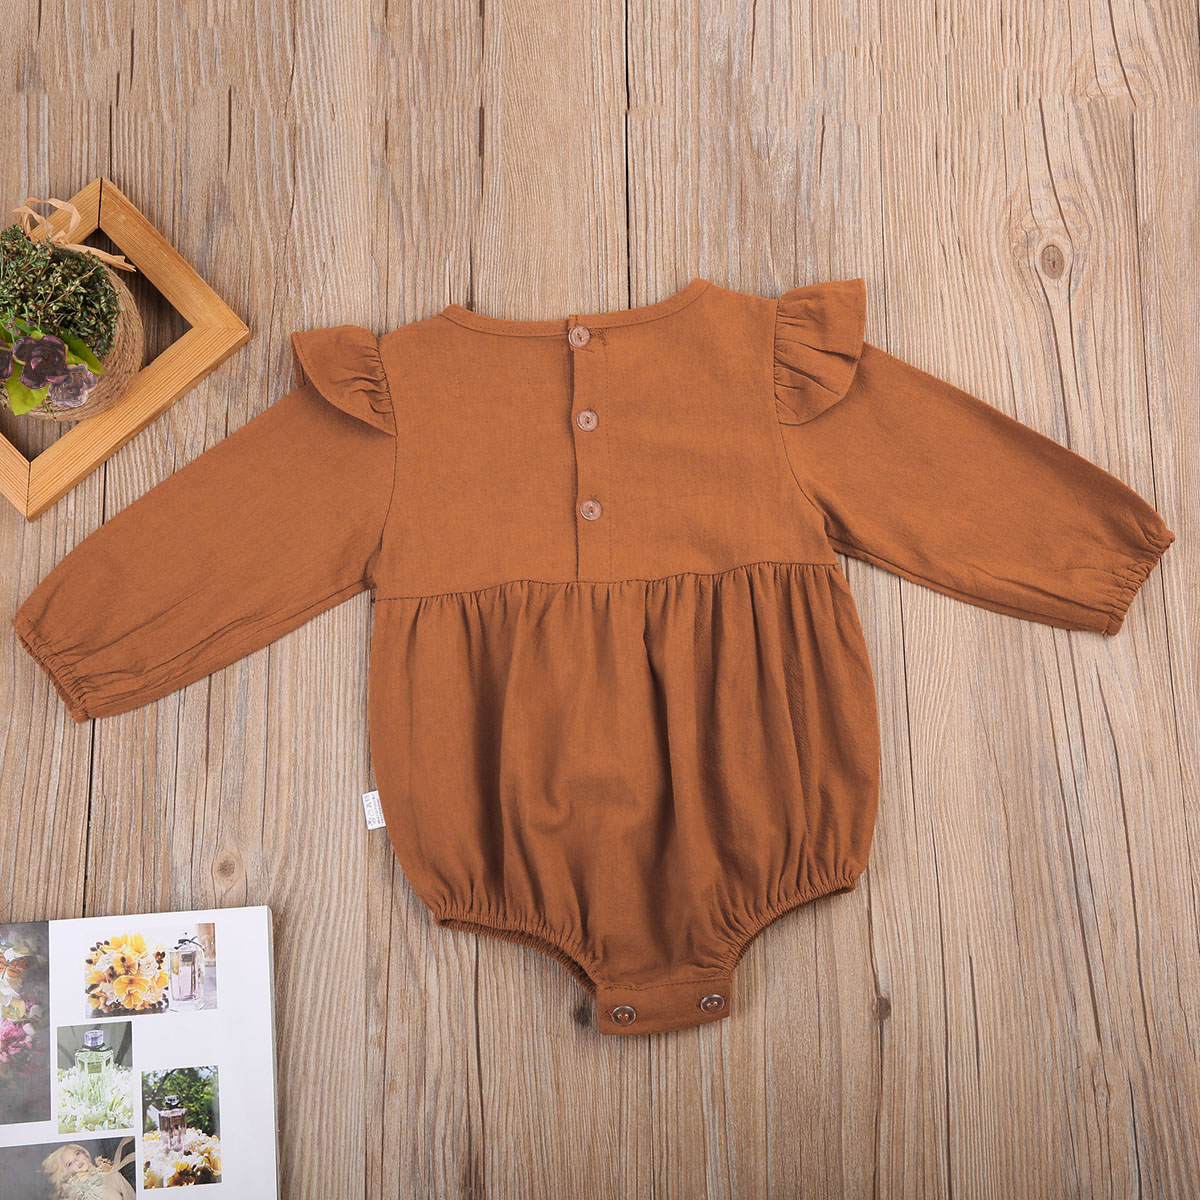 Hd38c0c94ff3941edba4438b8ce1a1726R Pudcoco Solid Cotton Baby Autumn Rompers Vintage Baby Girl Romper Long Sleeve Baby Clothes 3m - 3Years